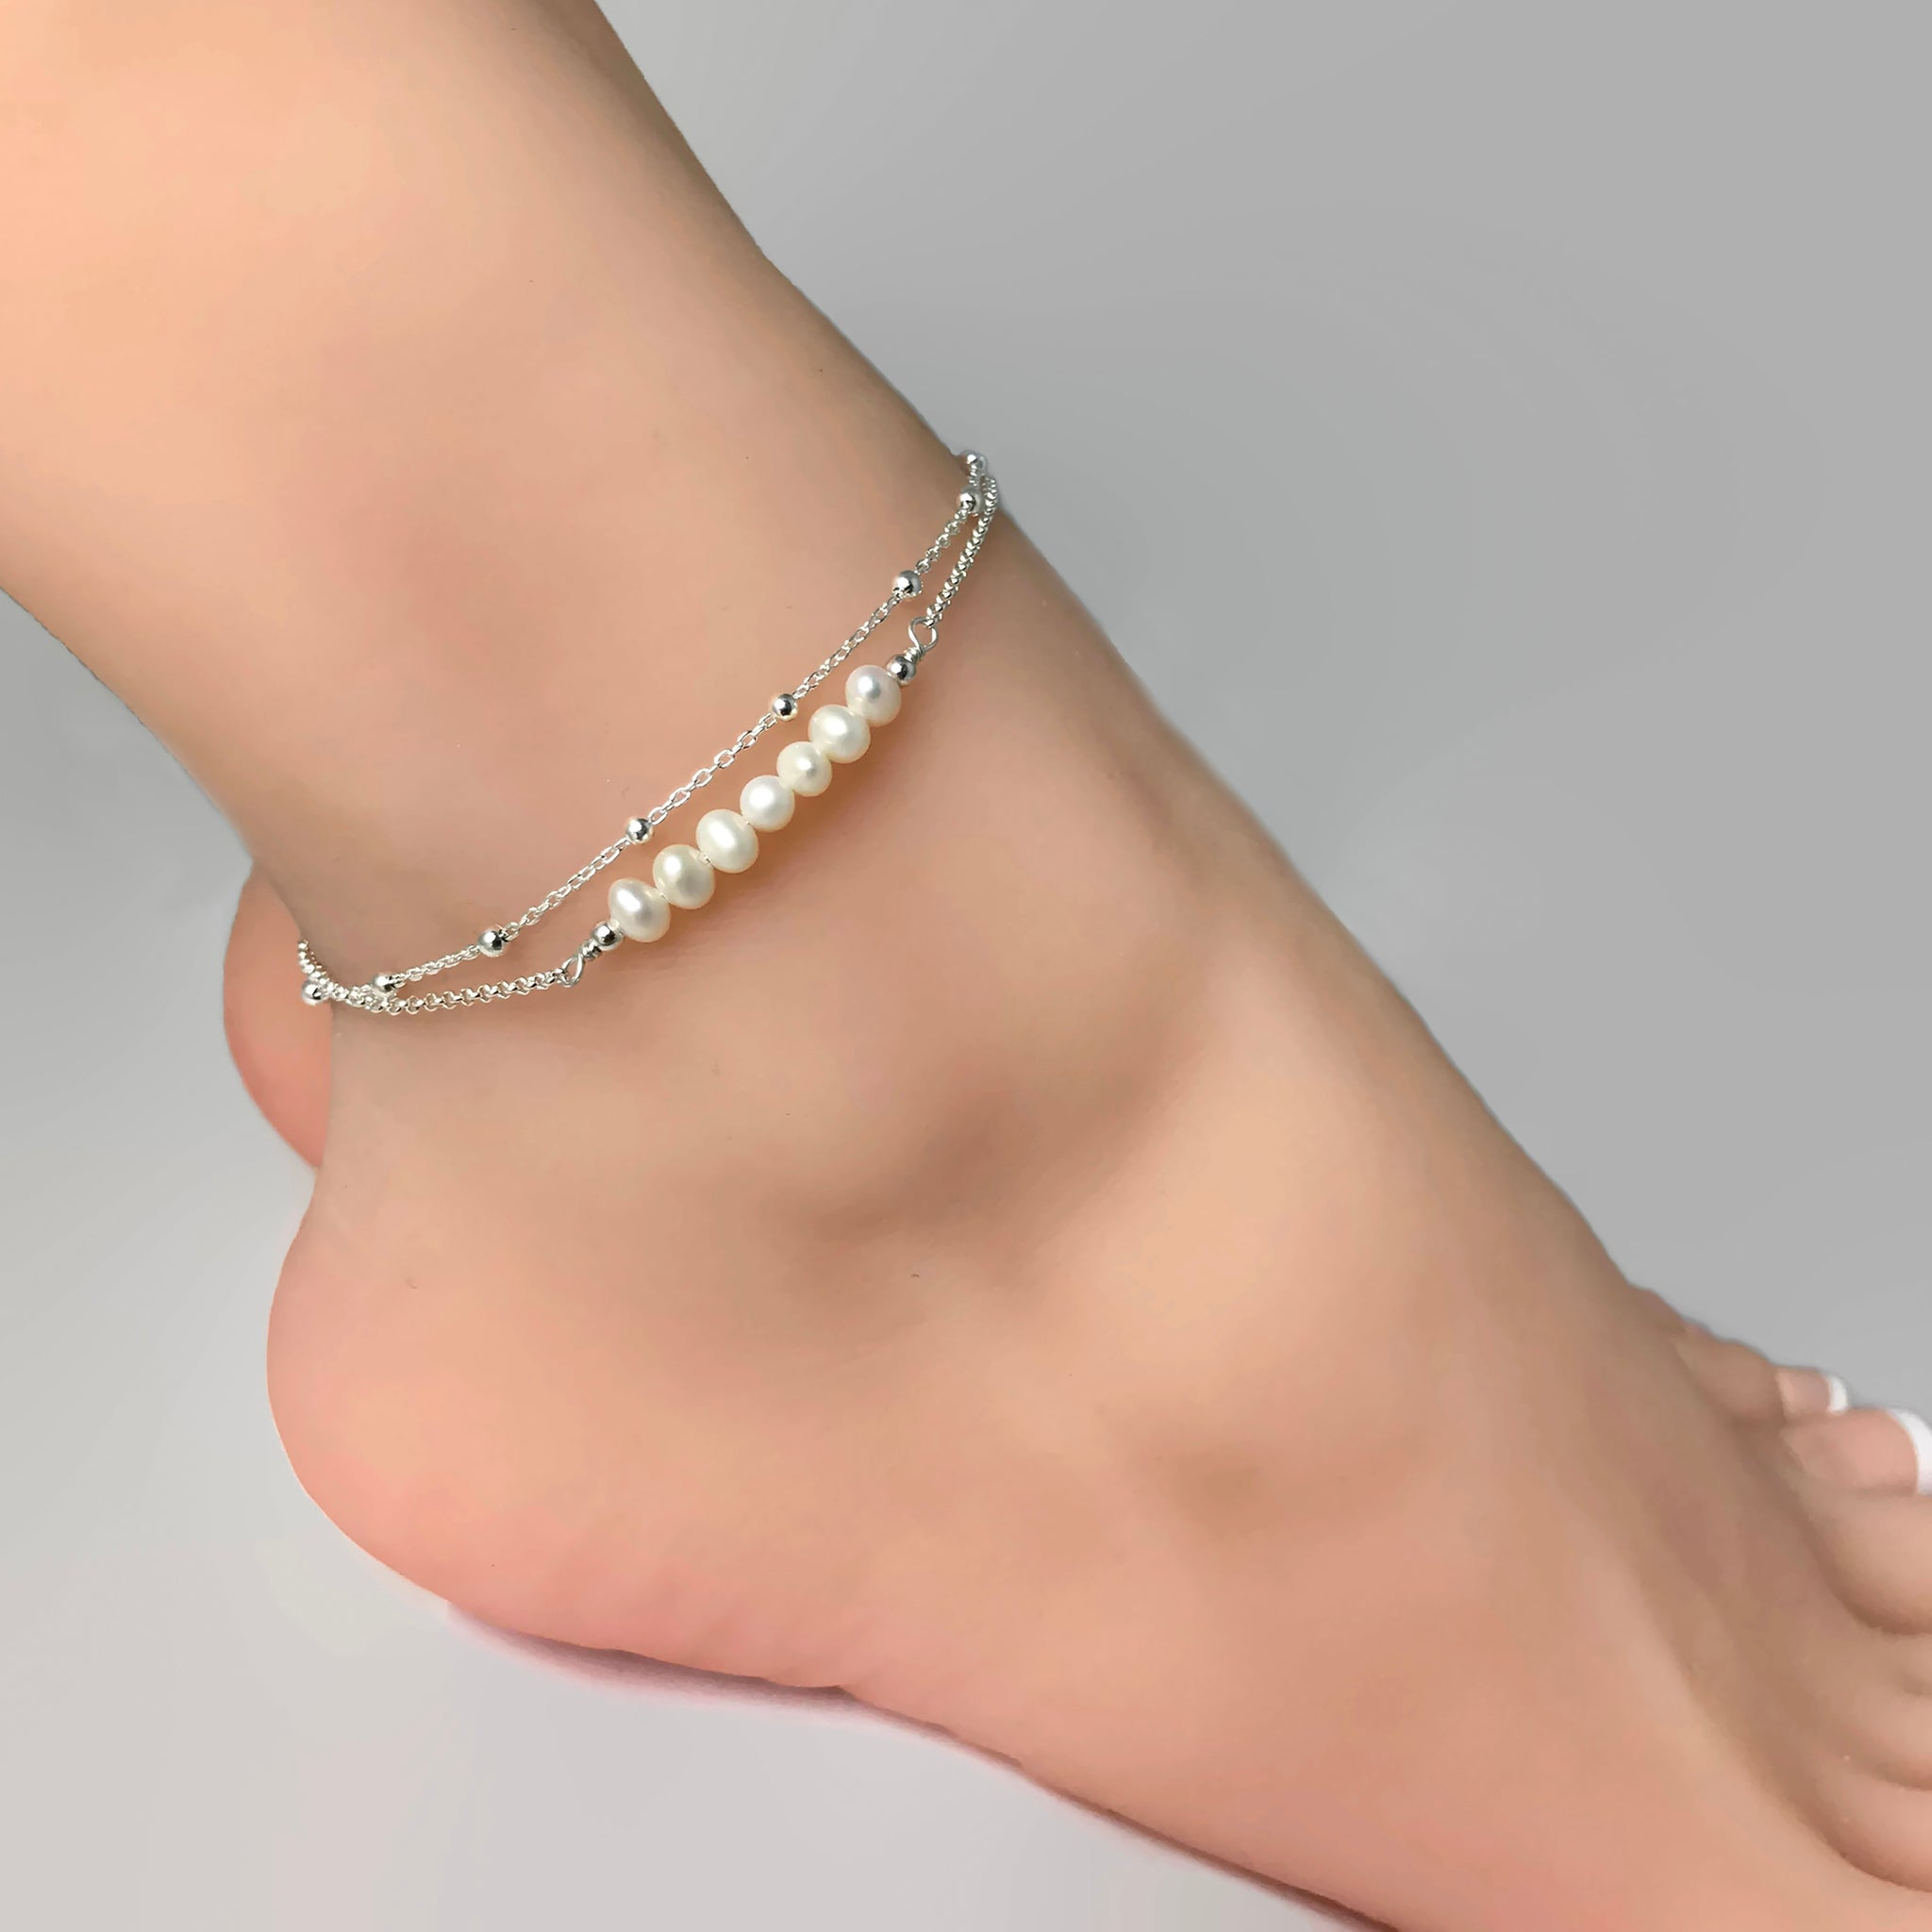 with anklet box p silver length heart chain weight mm grams sterling width